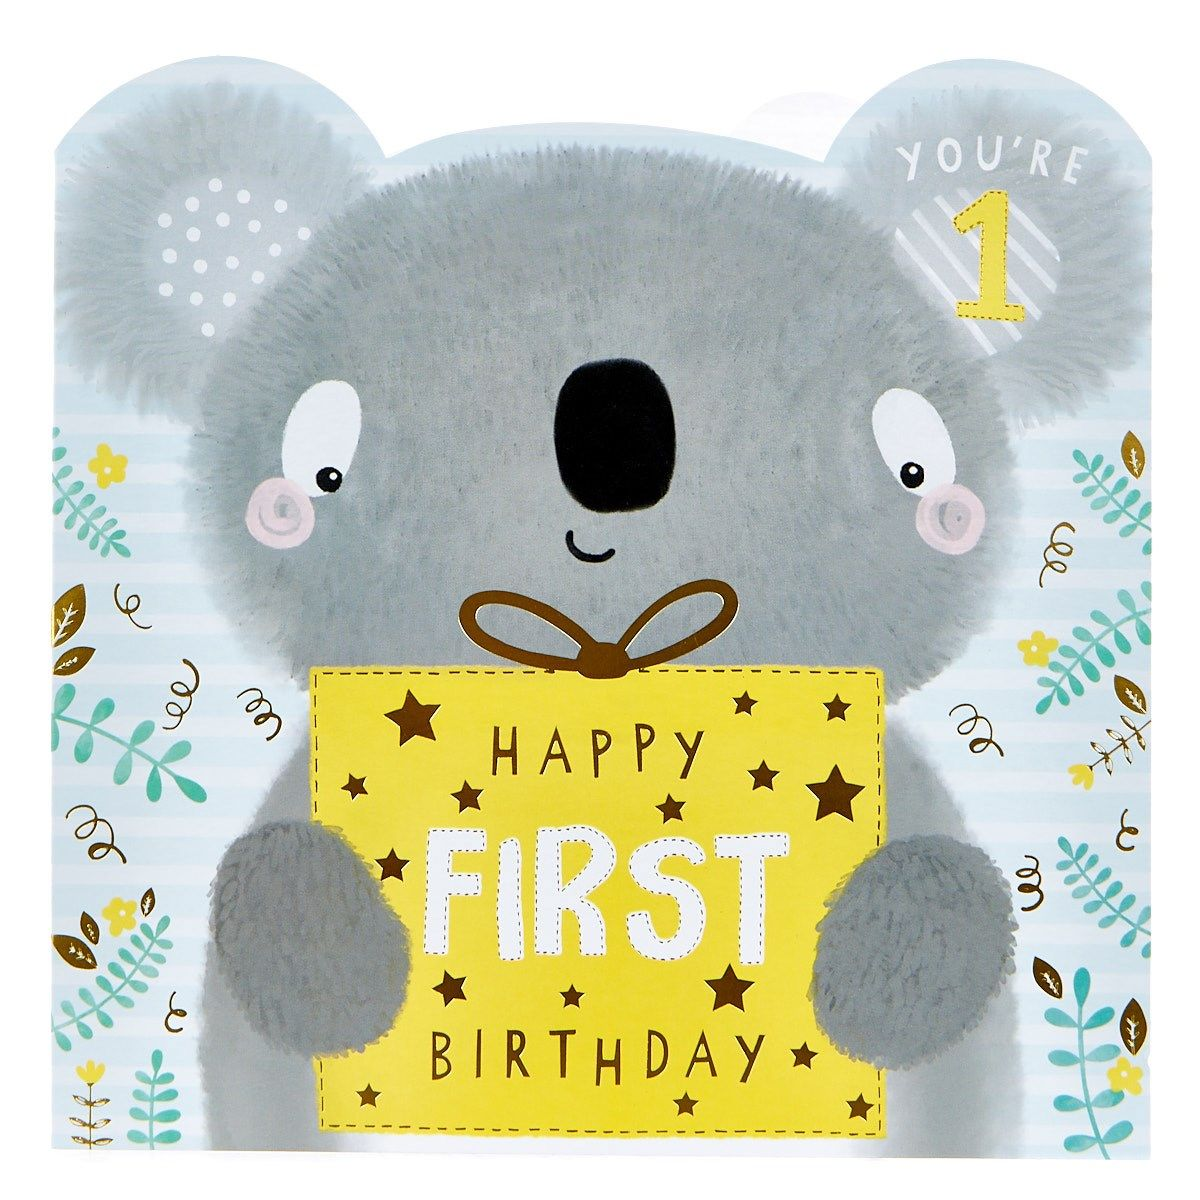 Platinum Collection 1st Birthday Card Cute Koala Card Factory 1st Birthday Cards First Birthday Cards Birthday Wishes For Kids